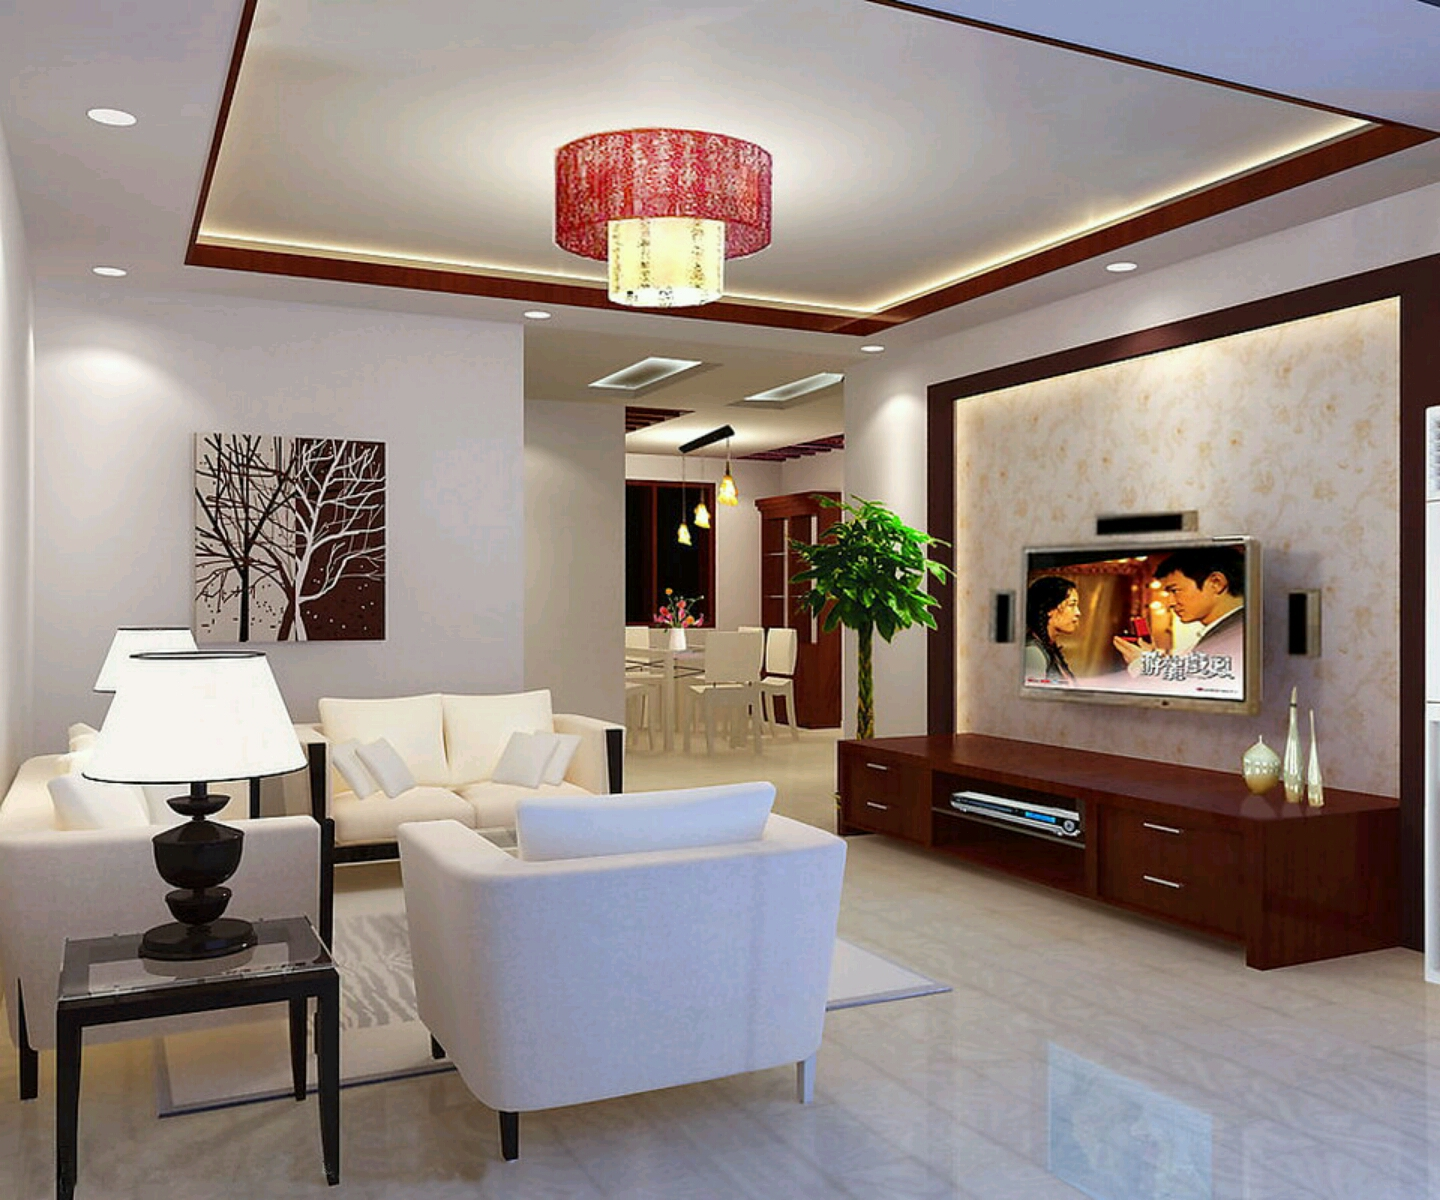 Best interior design house Interior decoration ideas for small living room